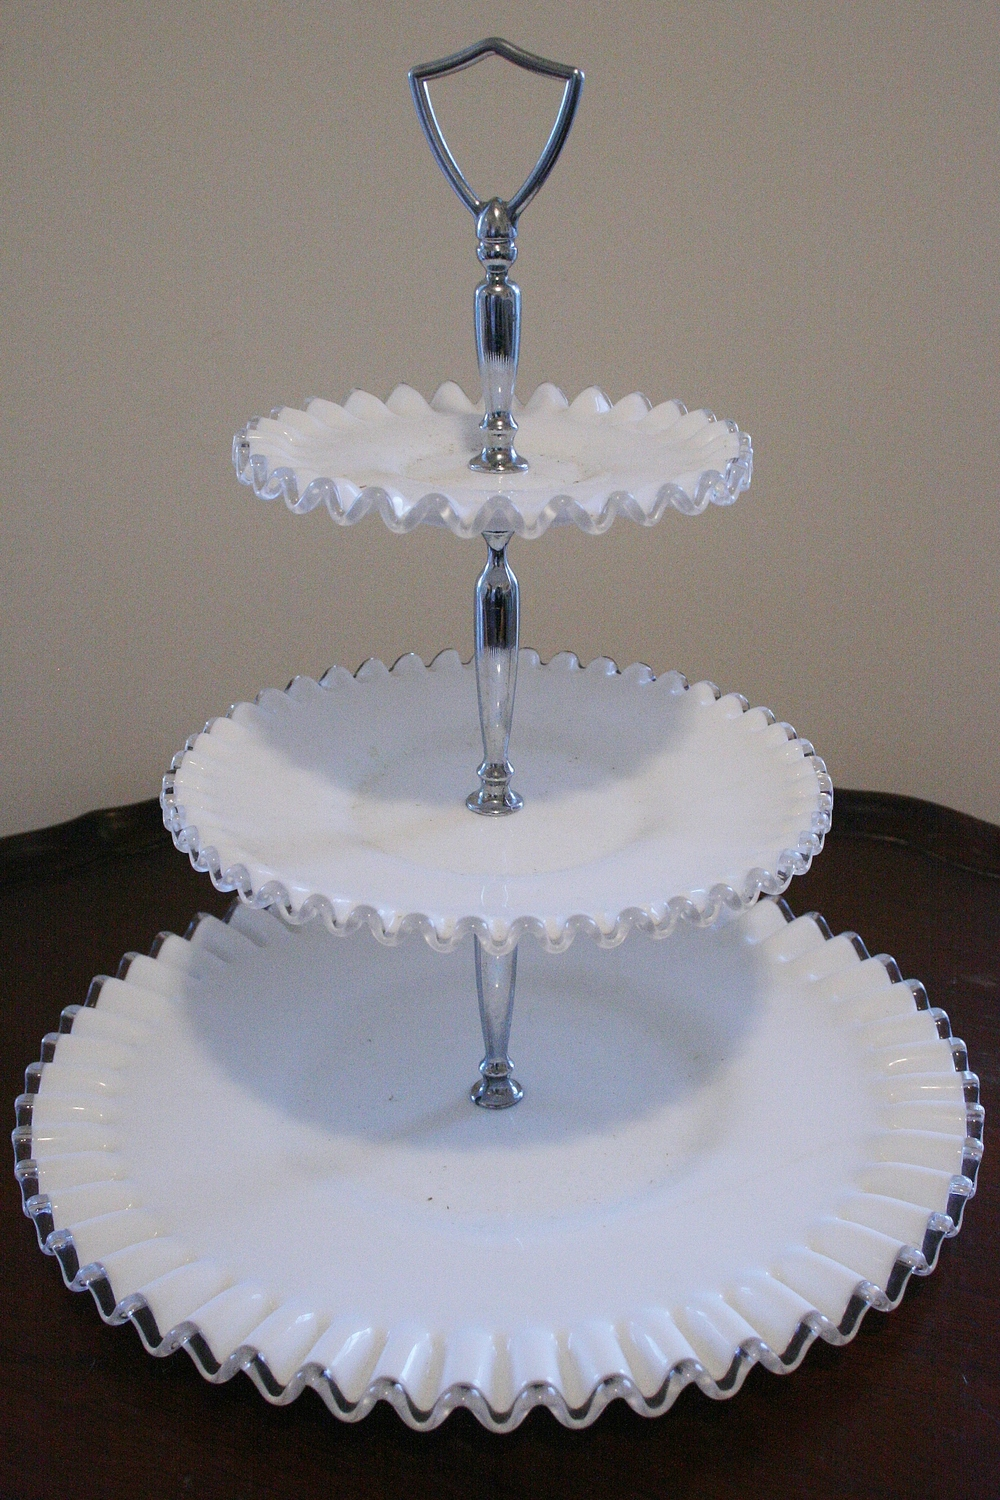 3 Tiered Fenton Food Display